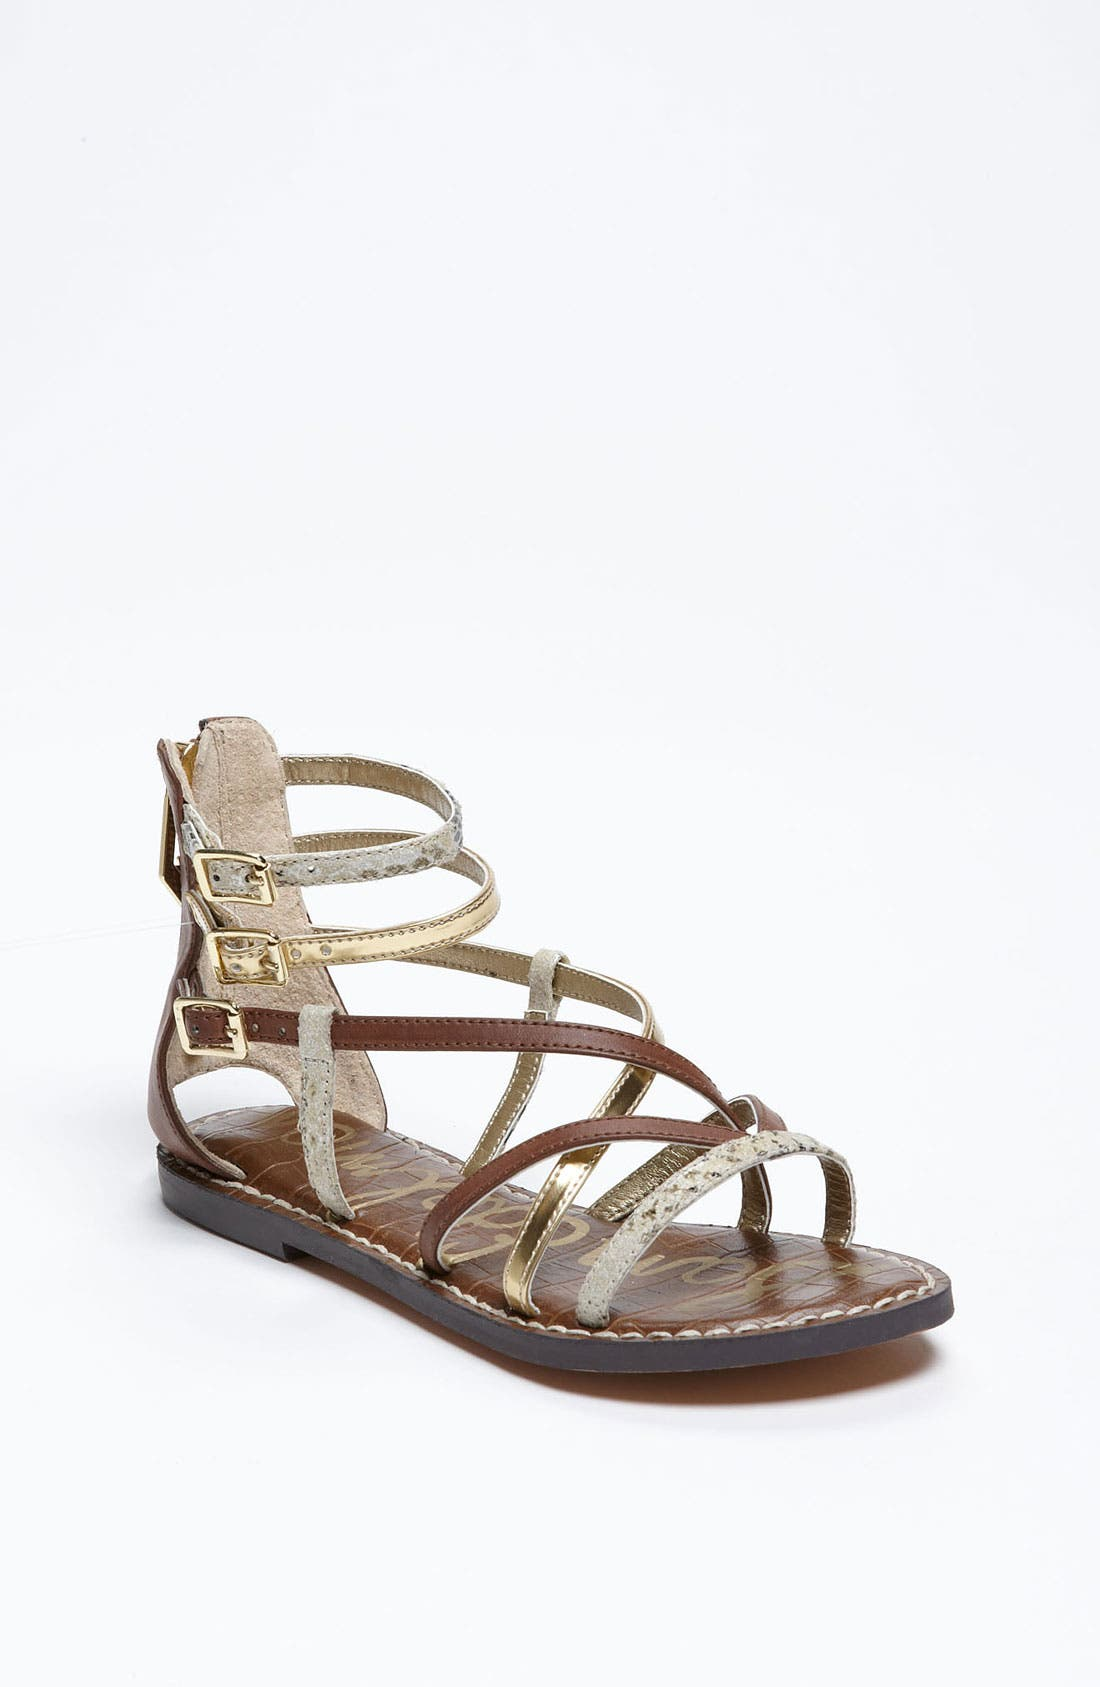 Alternate Image 1 Selected - Sam Edelman 'Gable' Sandal (Toddler, Little Kid & Big Kid)